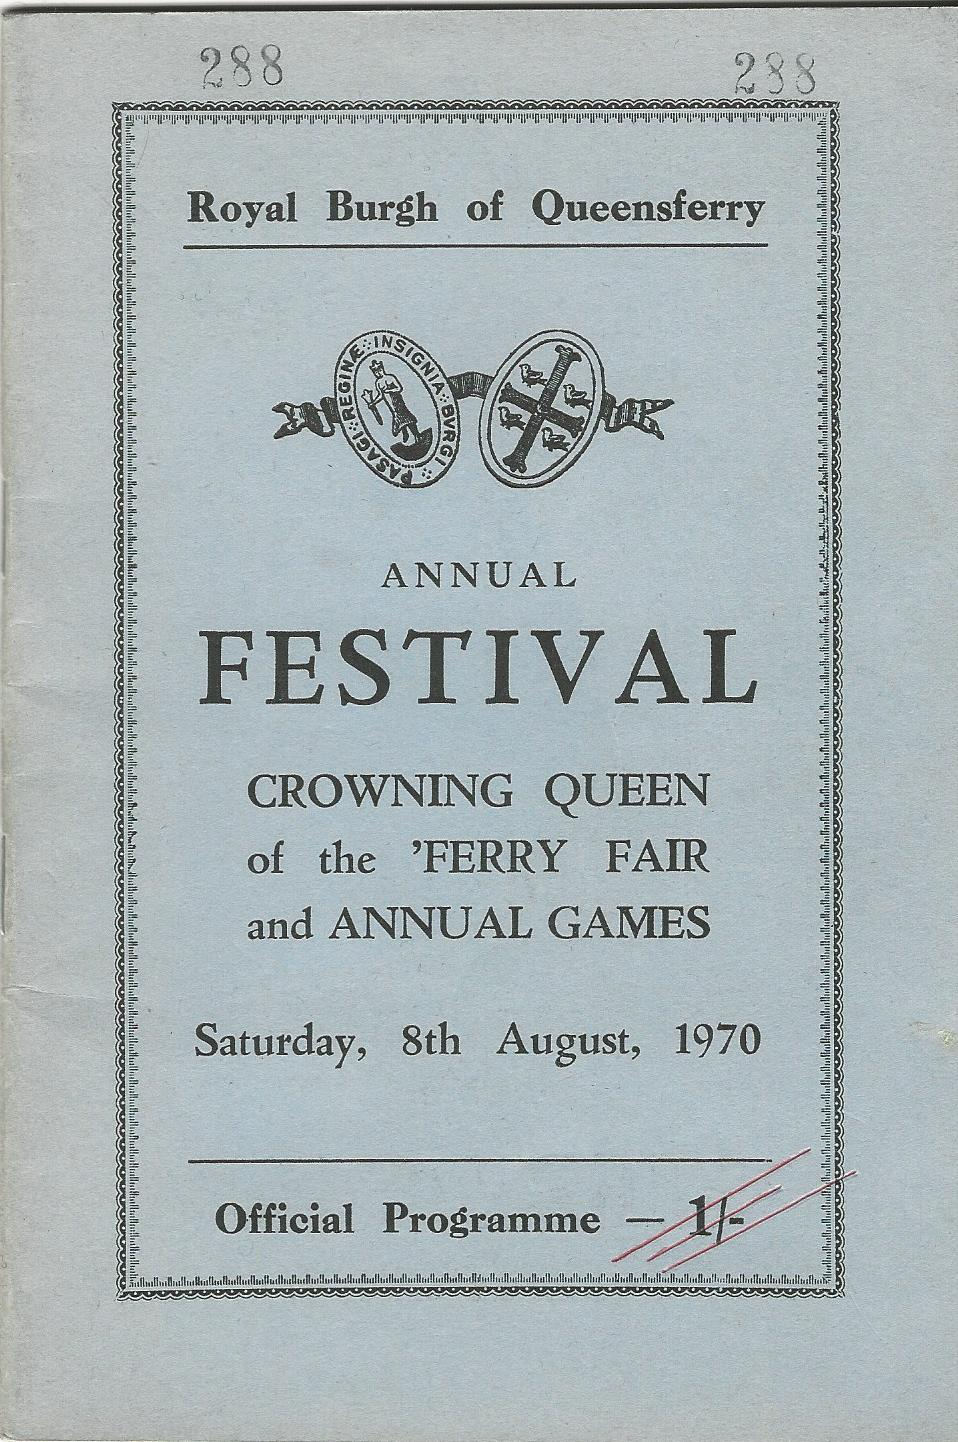 Image for Royal Burgh of Queensferry Annual Festival - Crowning Queen of the 'Ferry Fair and Annual Games, Saturday, 8th August, 1970.